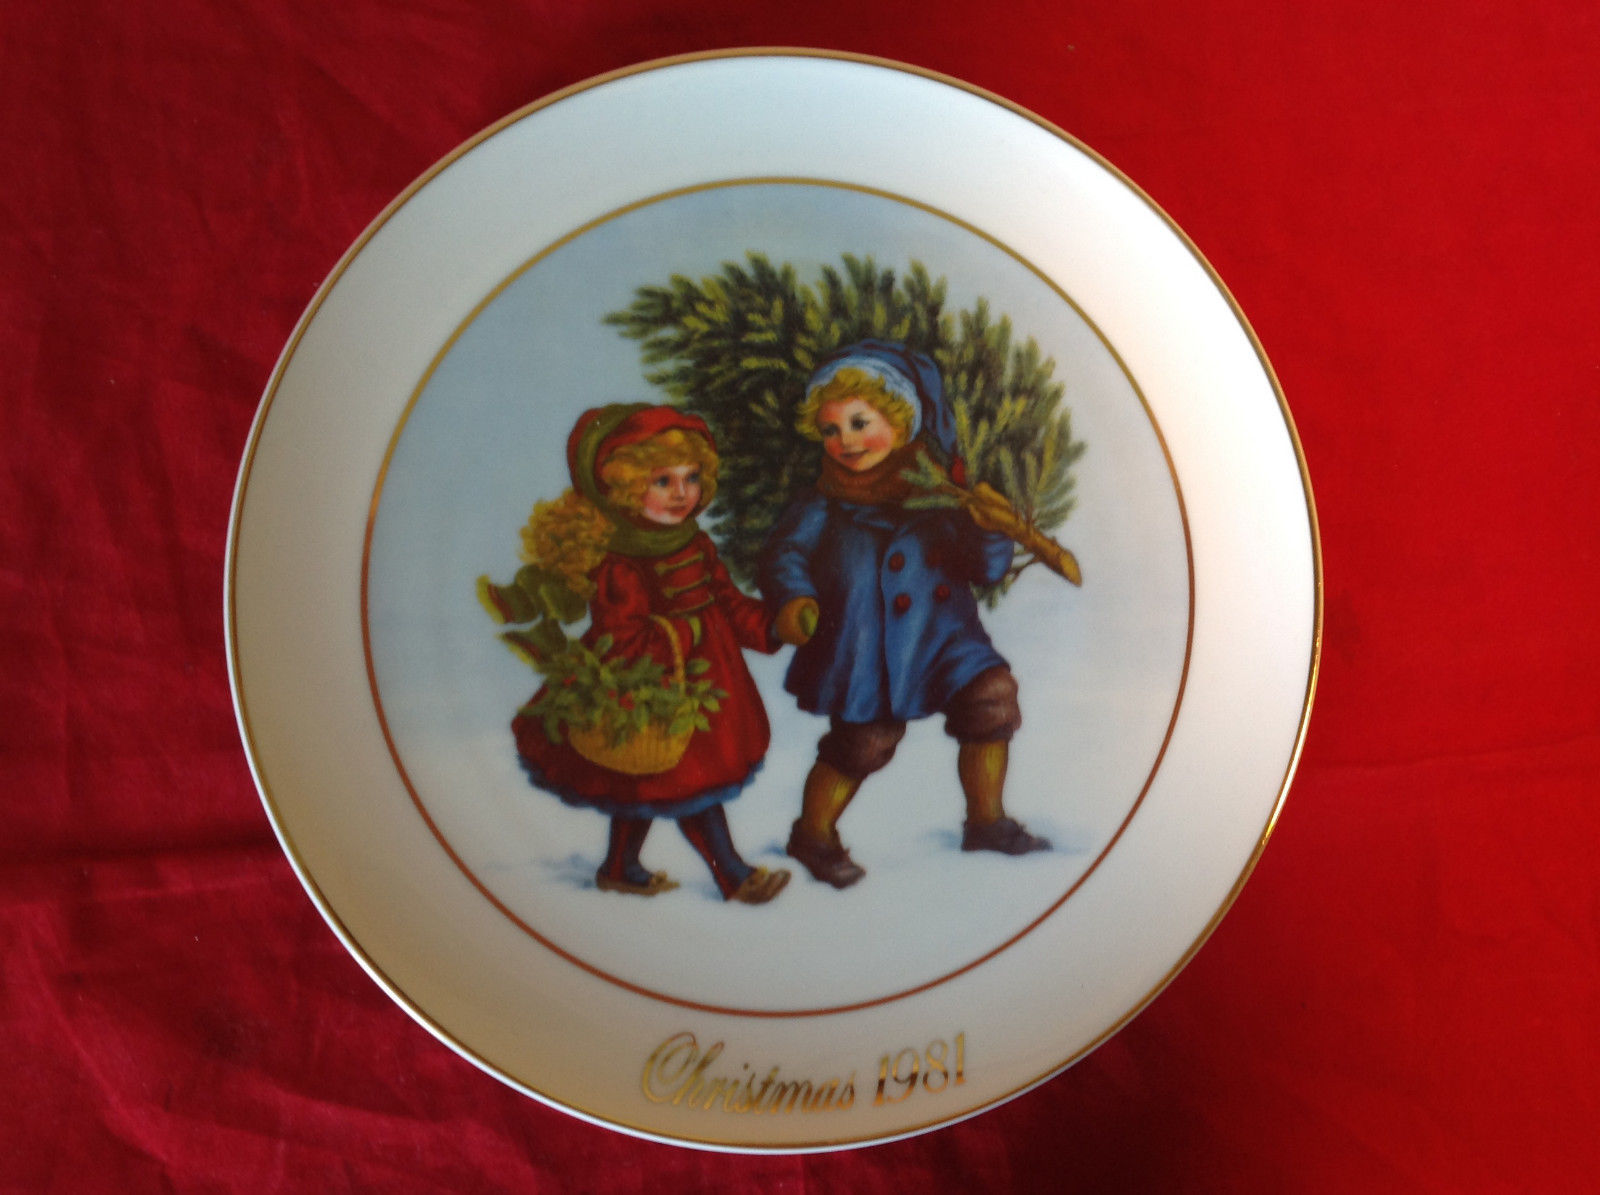 1981 Avon Christmas Tradition Collectors Plate Two Children Holding Hands